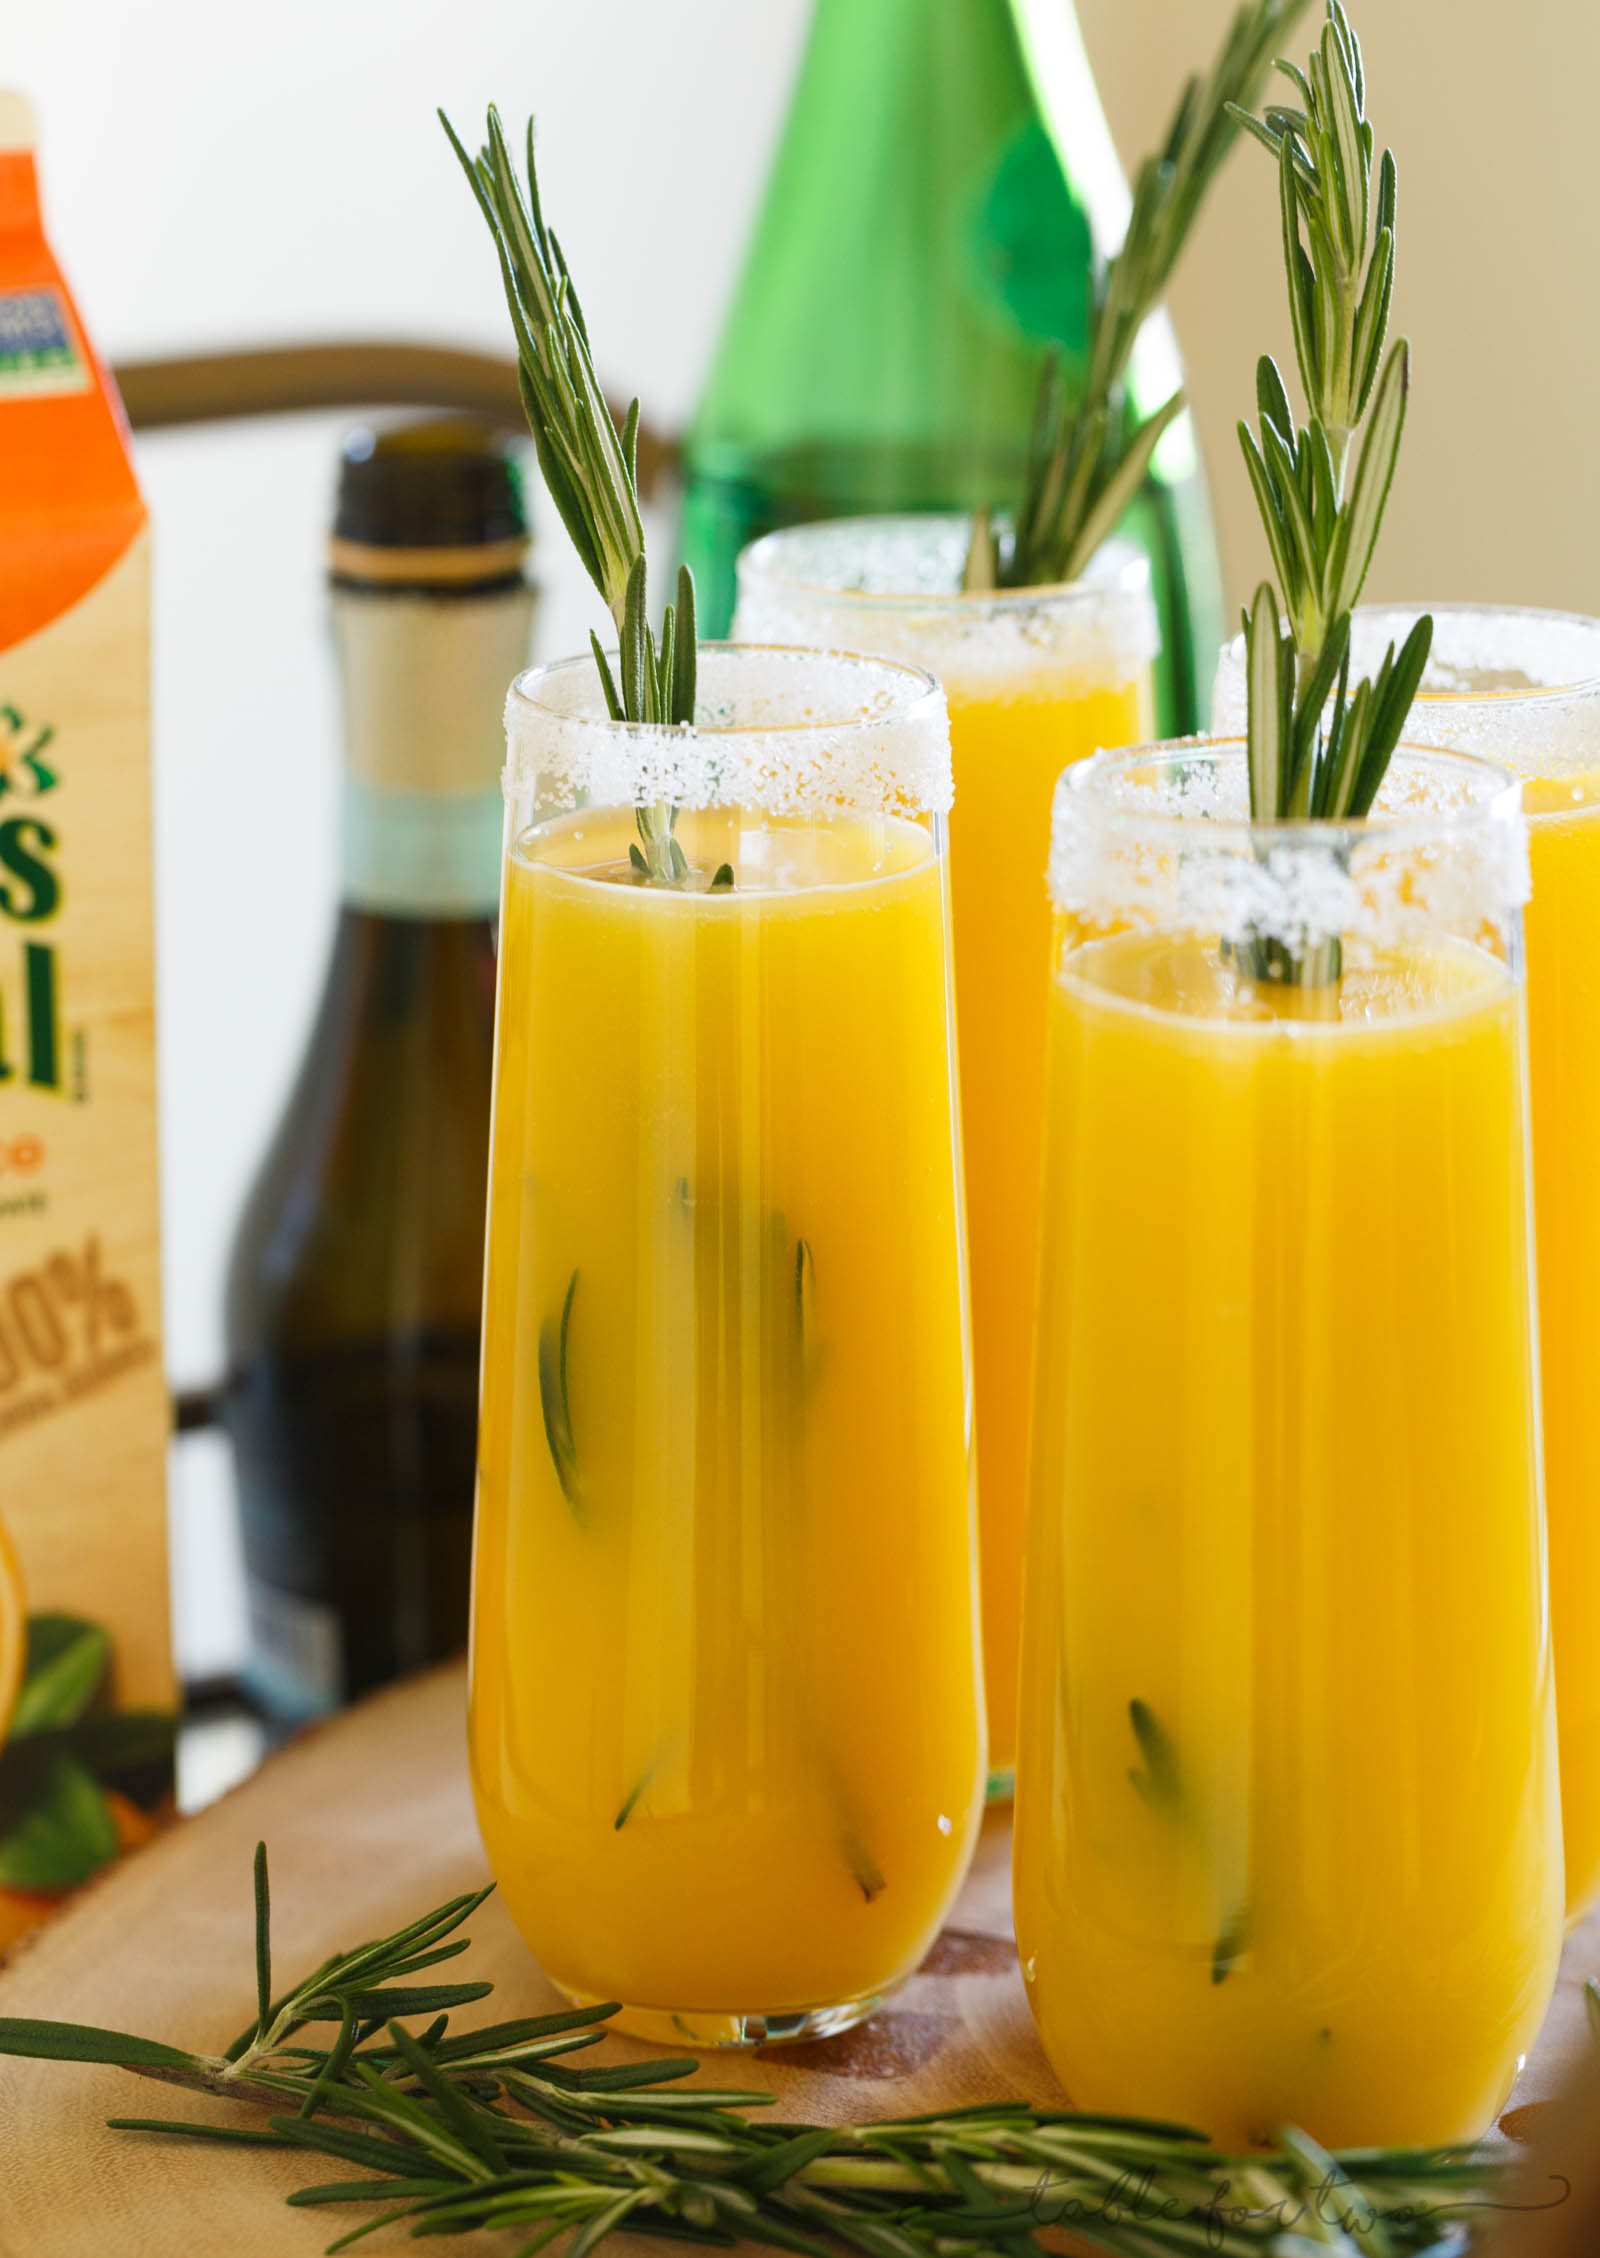 Your new favorite brunch drink with #FloridasNatural! This rosemary orange spritzer is the perfect drink for any occasion. Brunch, Easter, Mother's Day, what have you! Or maybe you just feel like sipping on something good to ring in the weekend! #ad